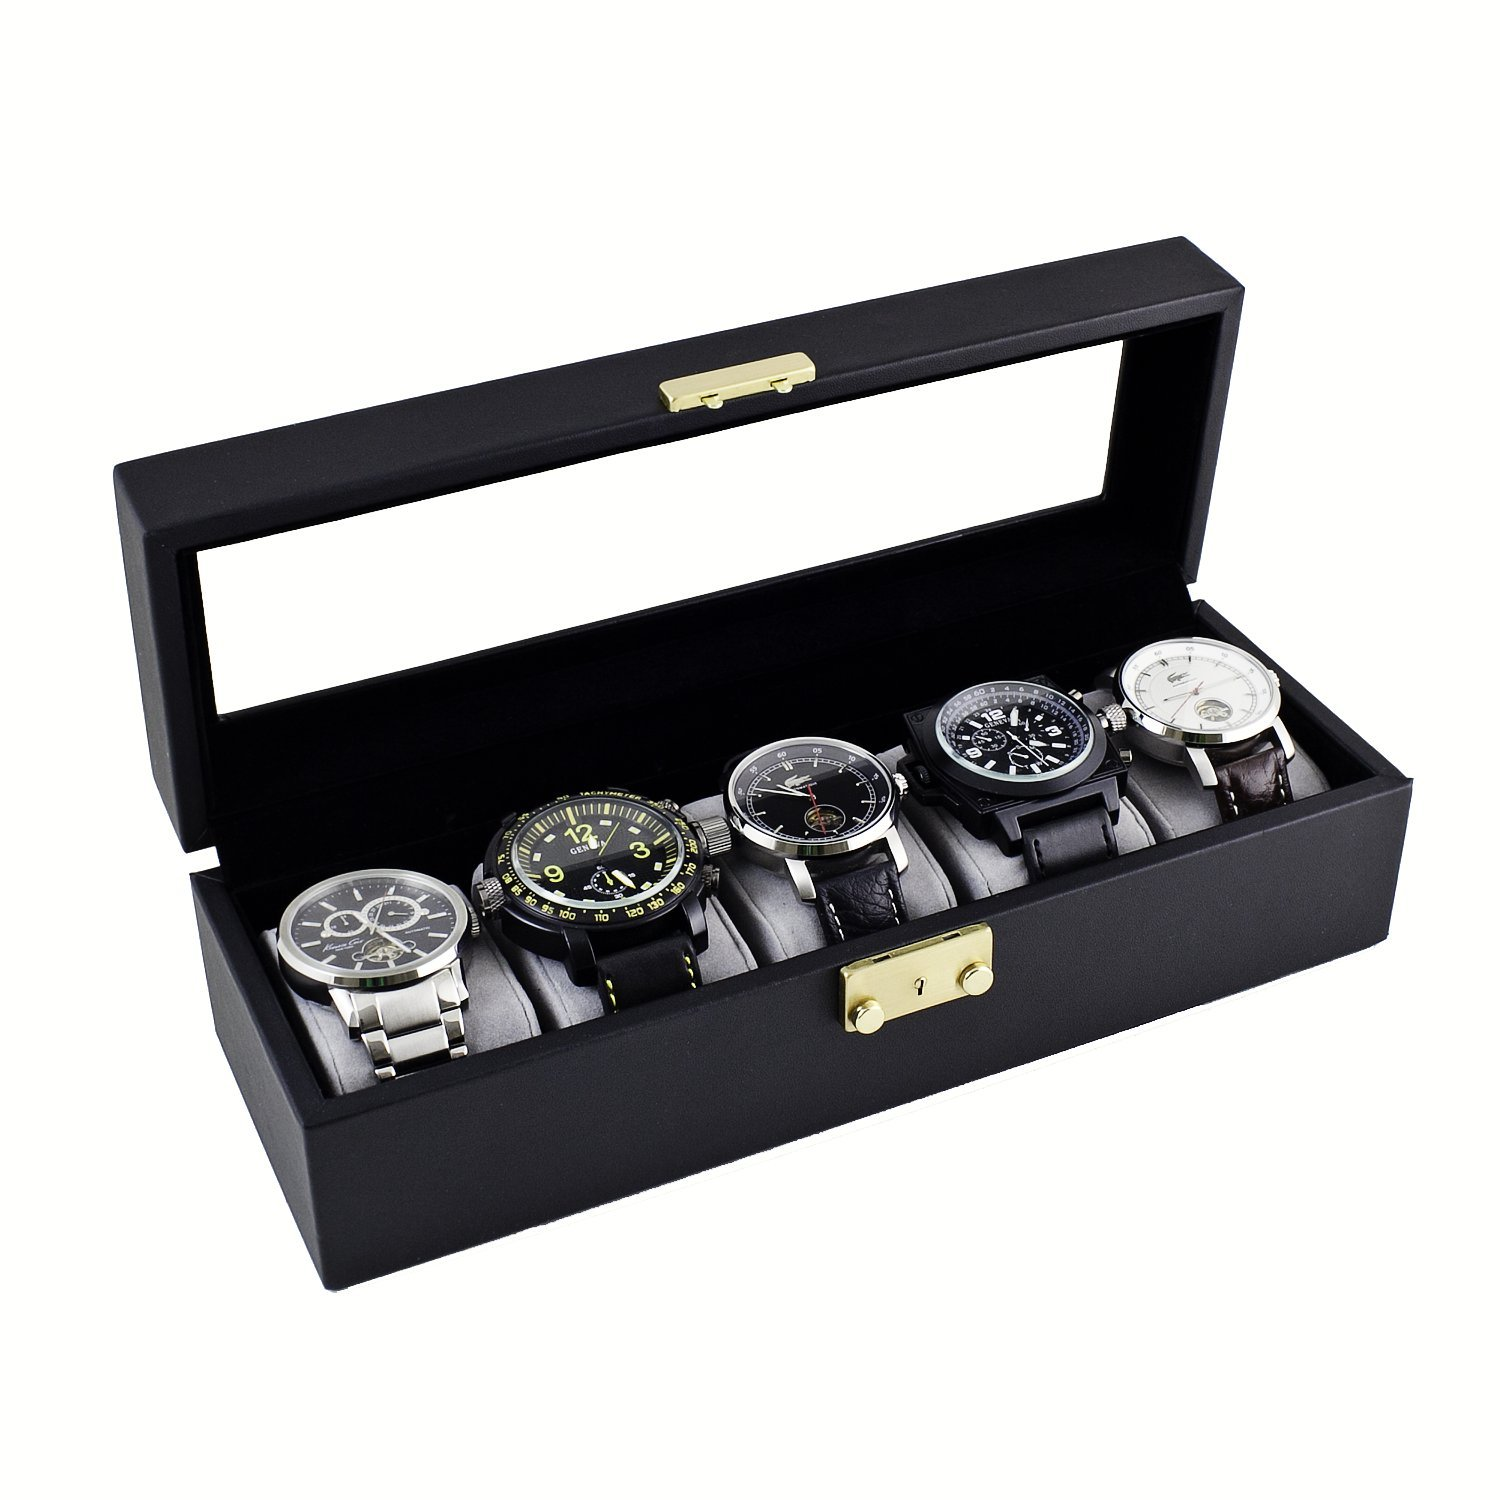 Image result for watch box